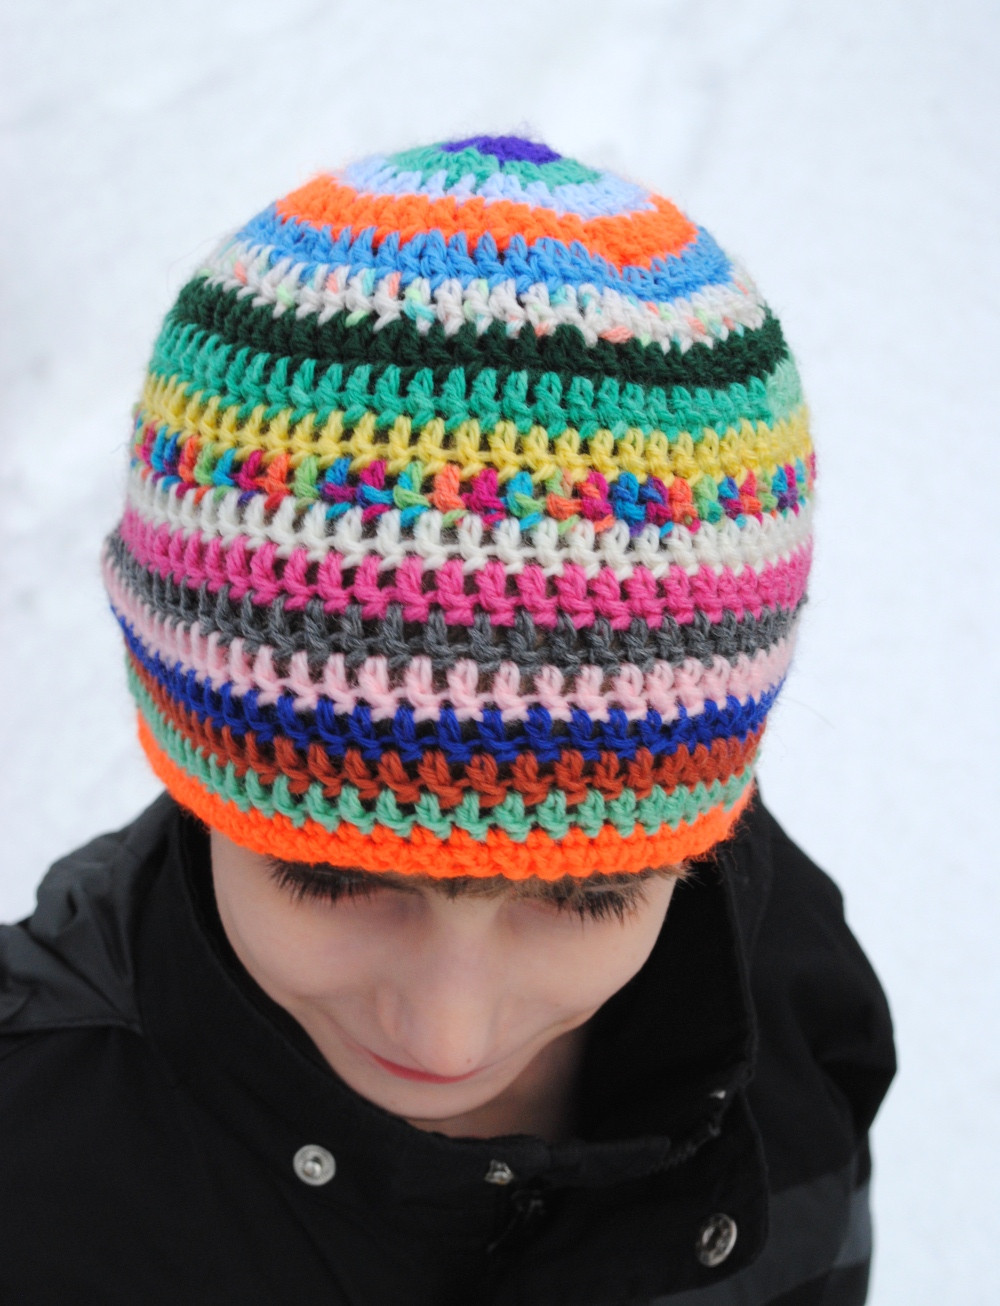 New Easy Charity Crochet Beanie Hat – Free Pattern Crochet Hat Patterns for Adults Of Marvelous 47 Ideas Crochet Hat Patterns for Adults